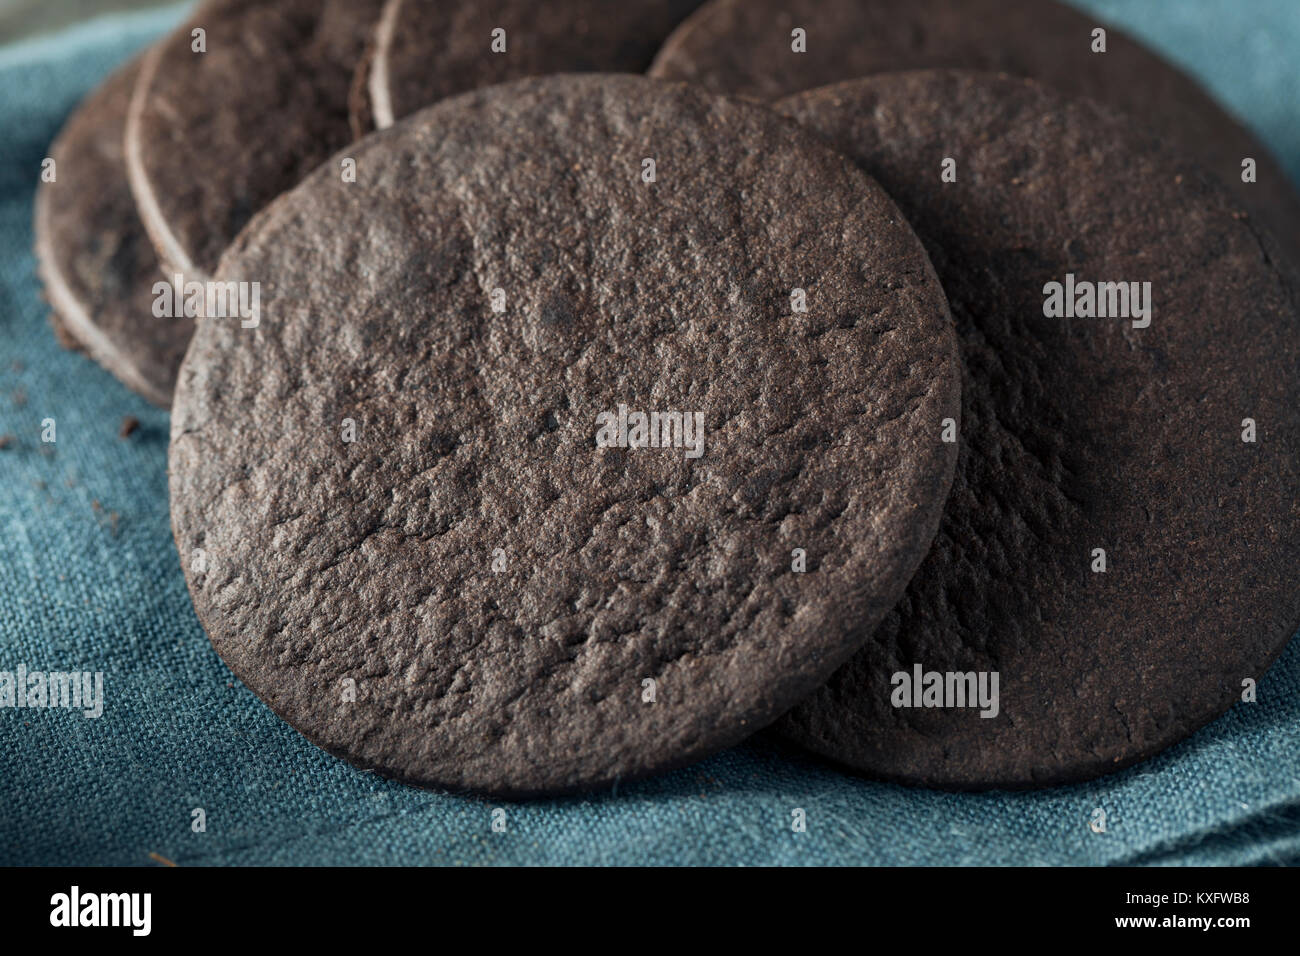 Homemade Round Chocolate Wafer Cookies in a Stack - Stock Image